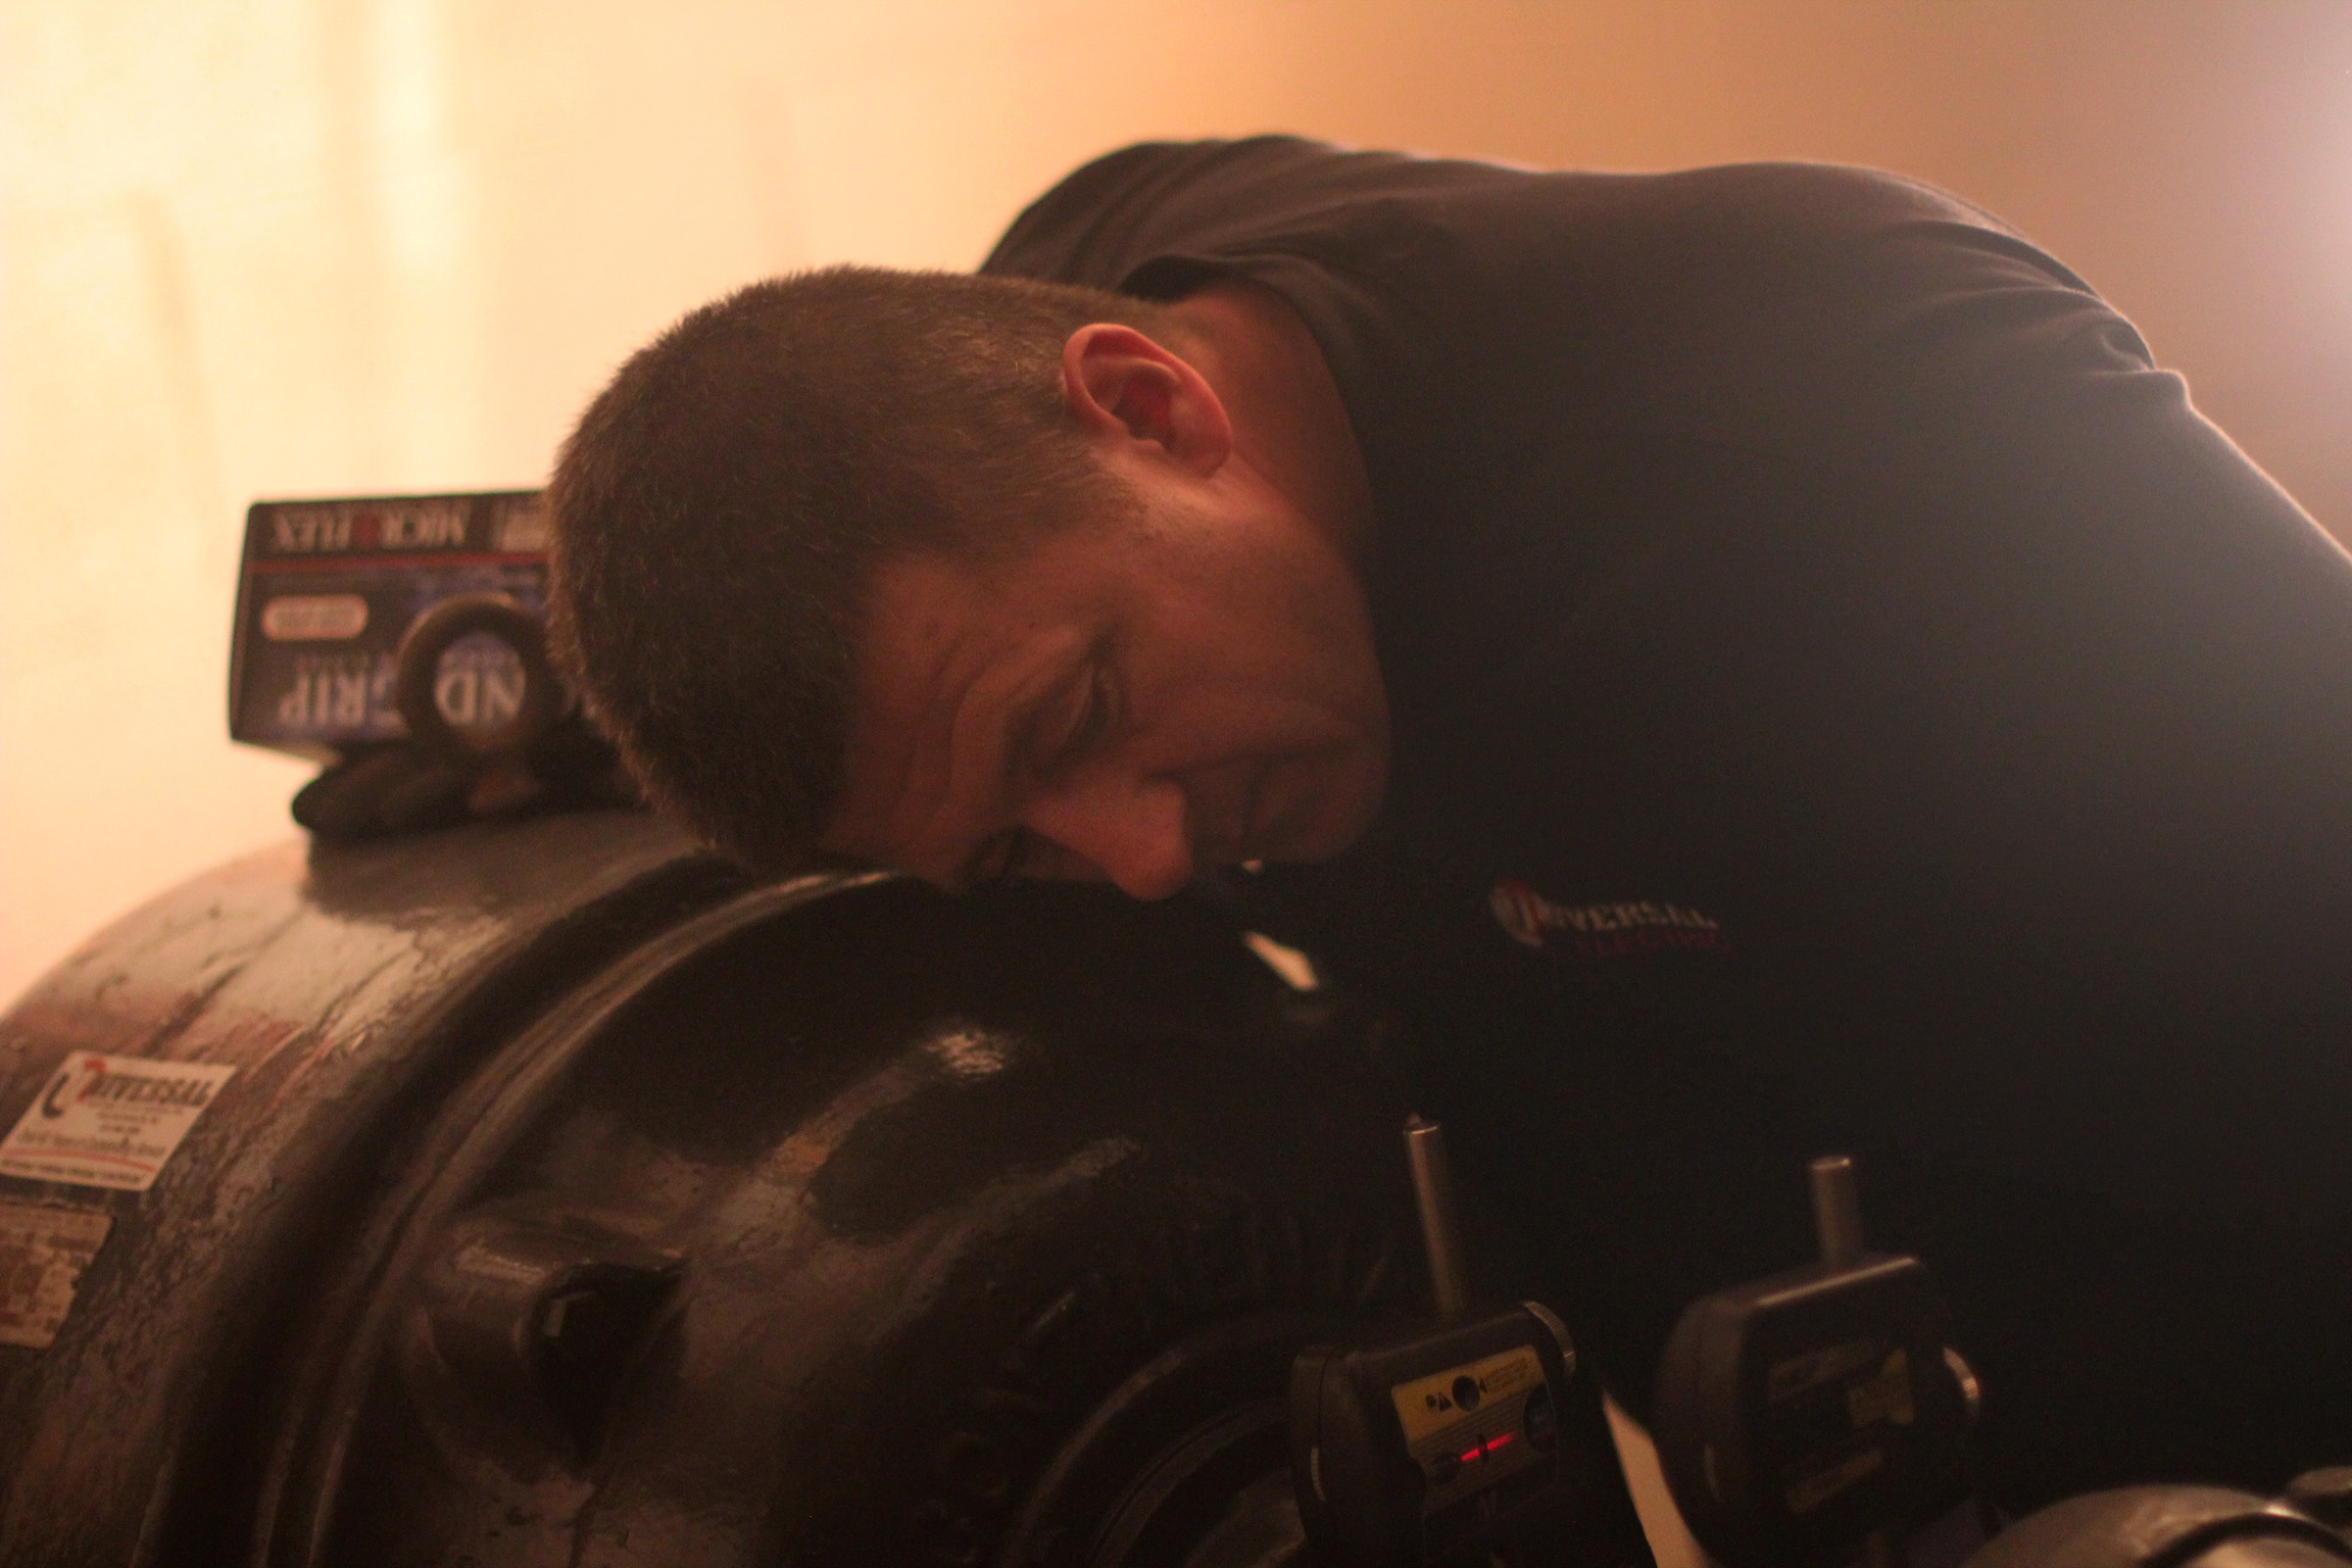 Mechanic Robert Sudo adjusts the motor of a powerful water pump that was knocked out by flooding.